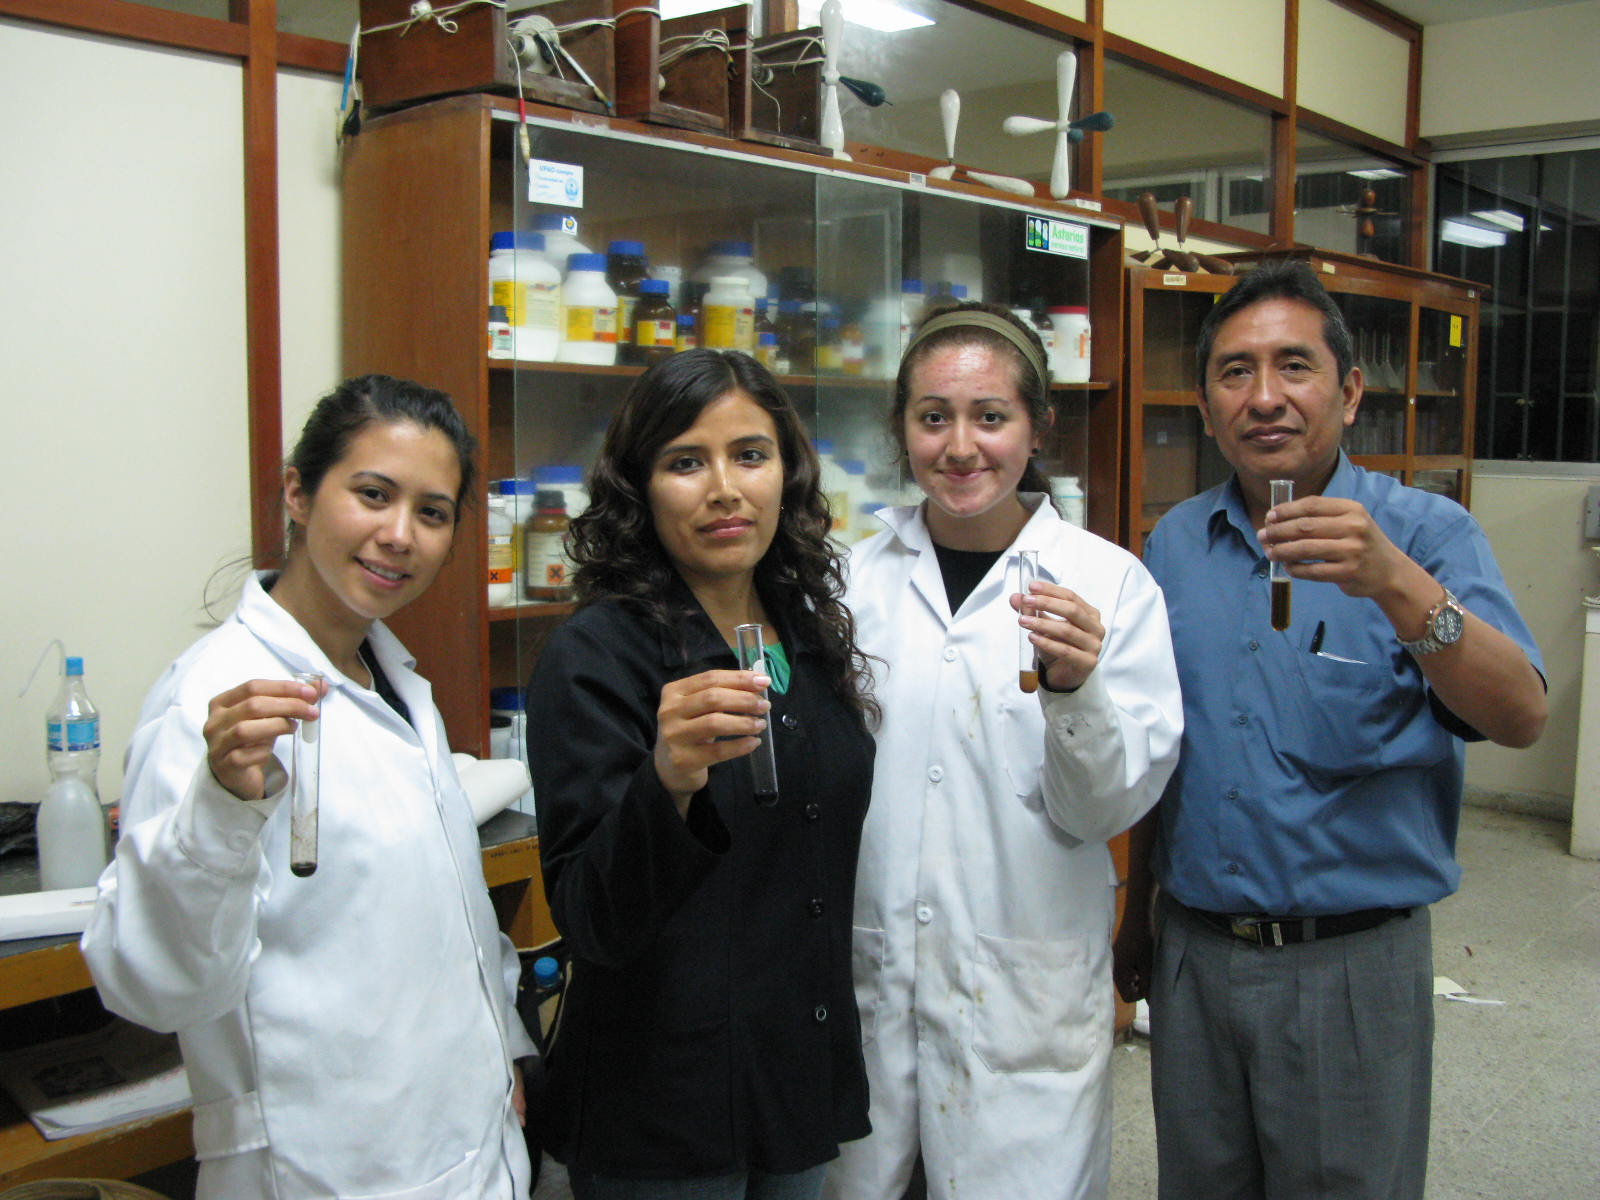 Summer2008 - MHIRT students working in the lab under the guidance of Dr. Fredy Pérez (right). Photo by John Effio.